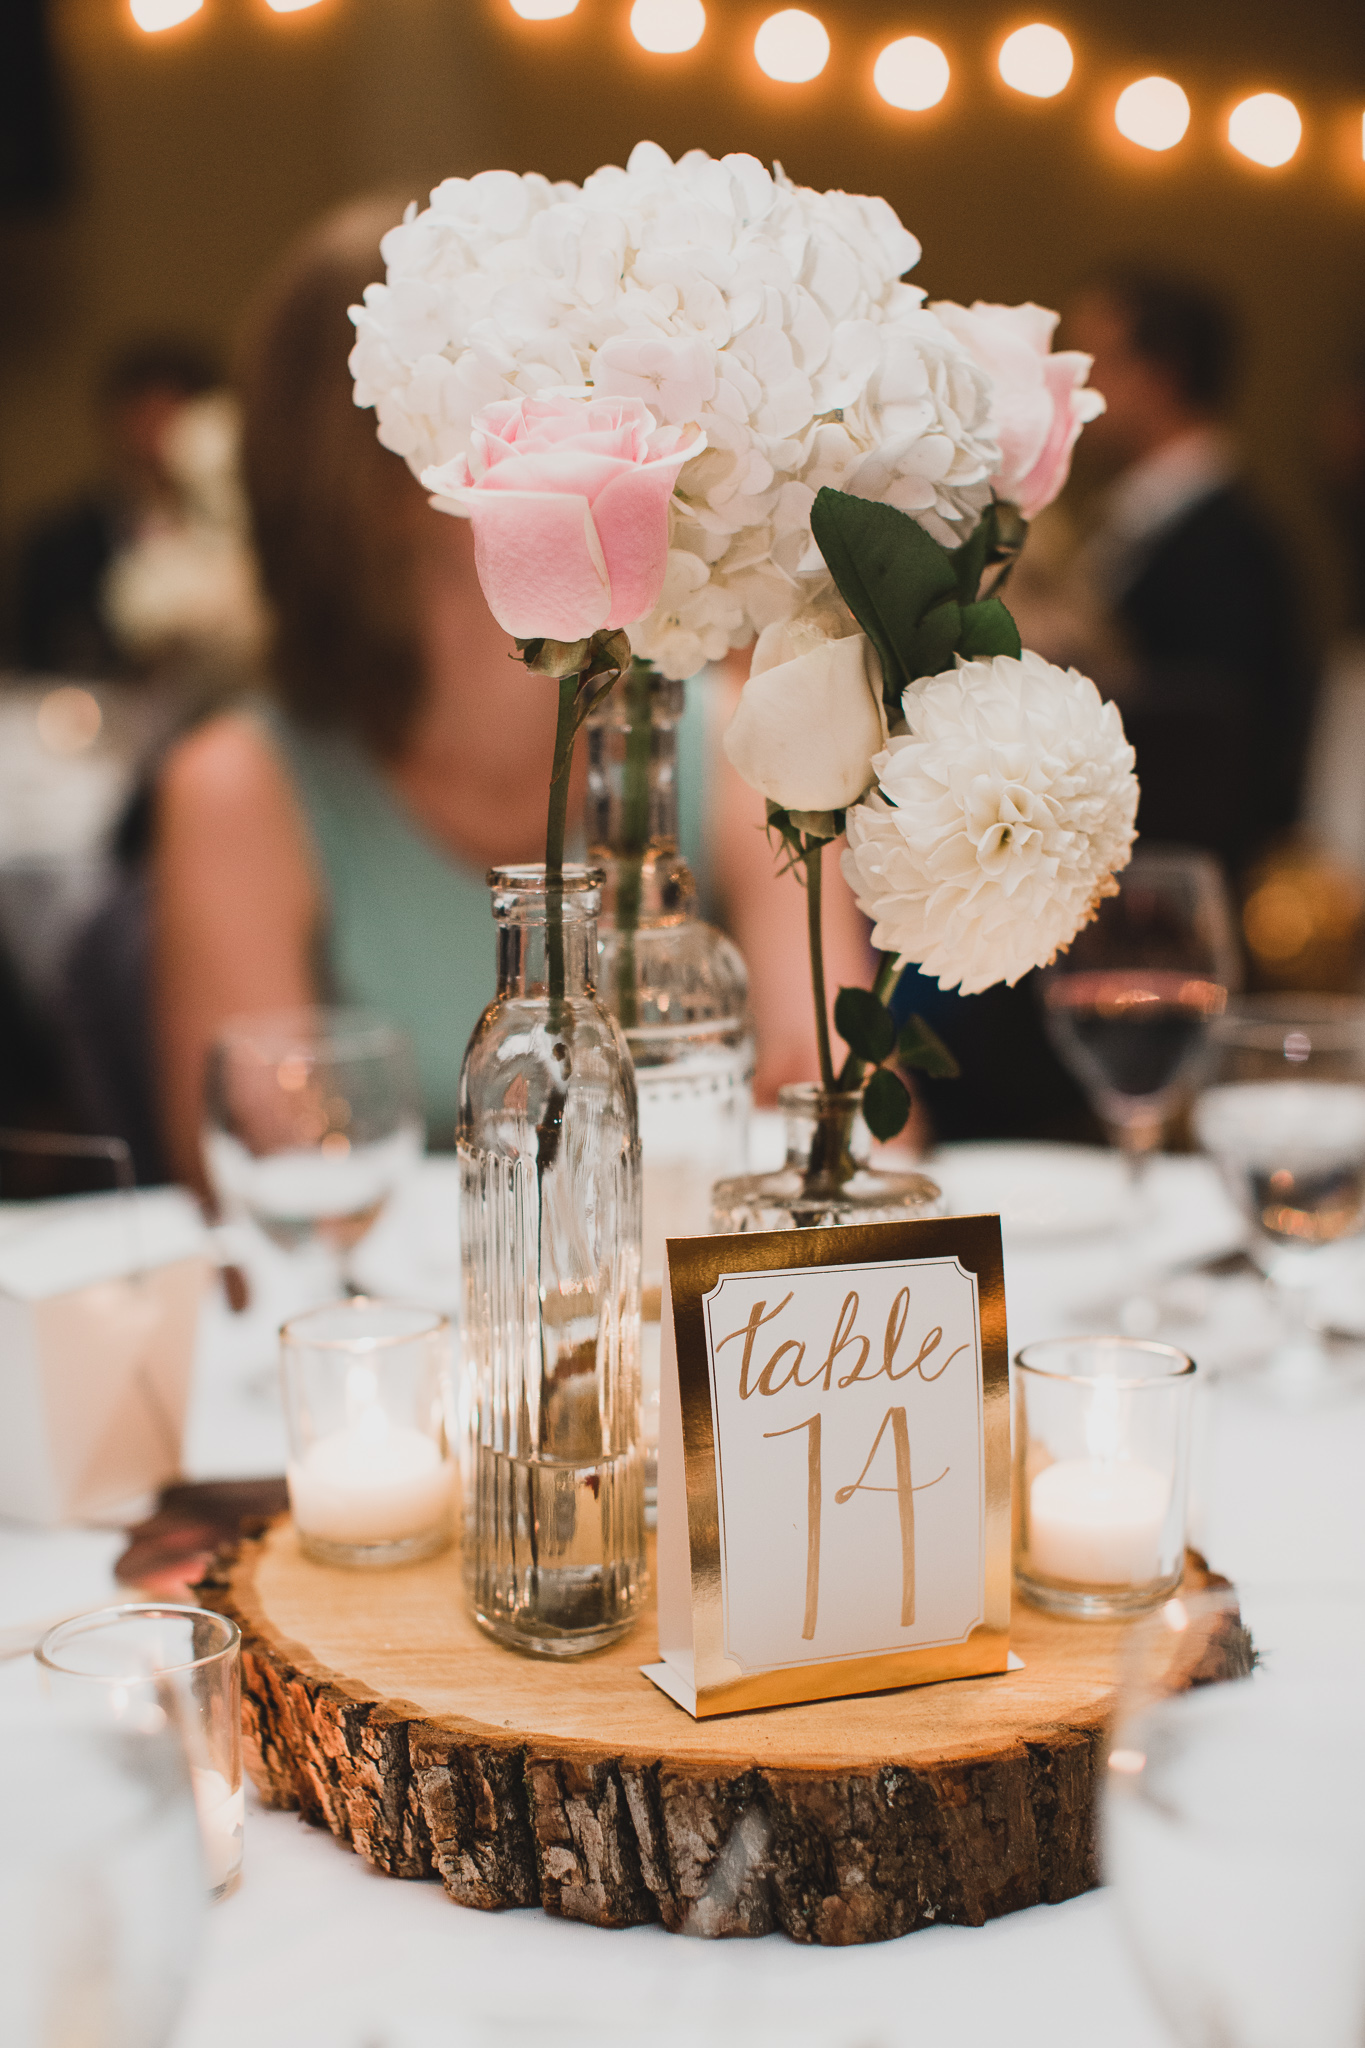 Rustic chic wedding table centerpiece